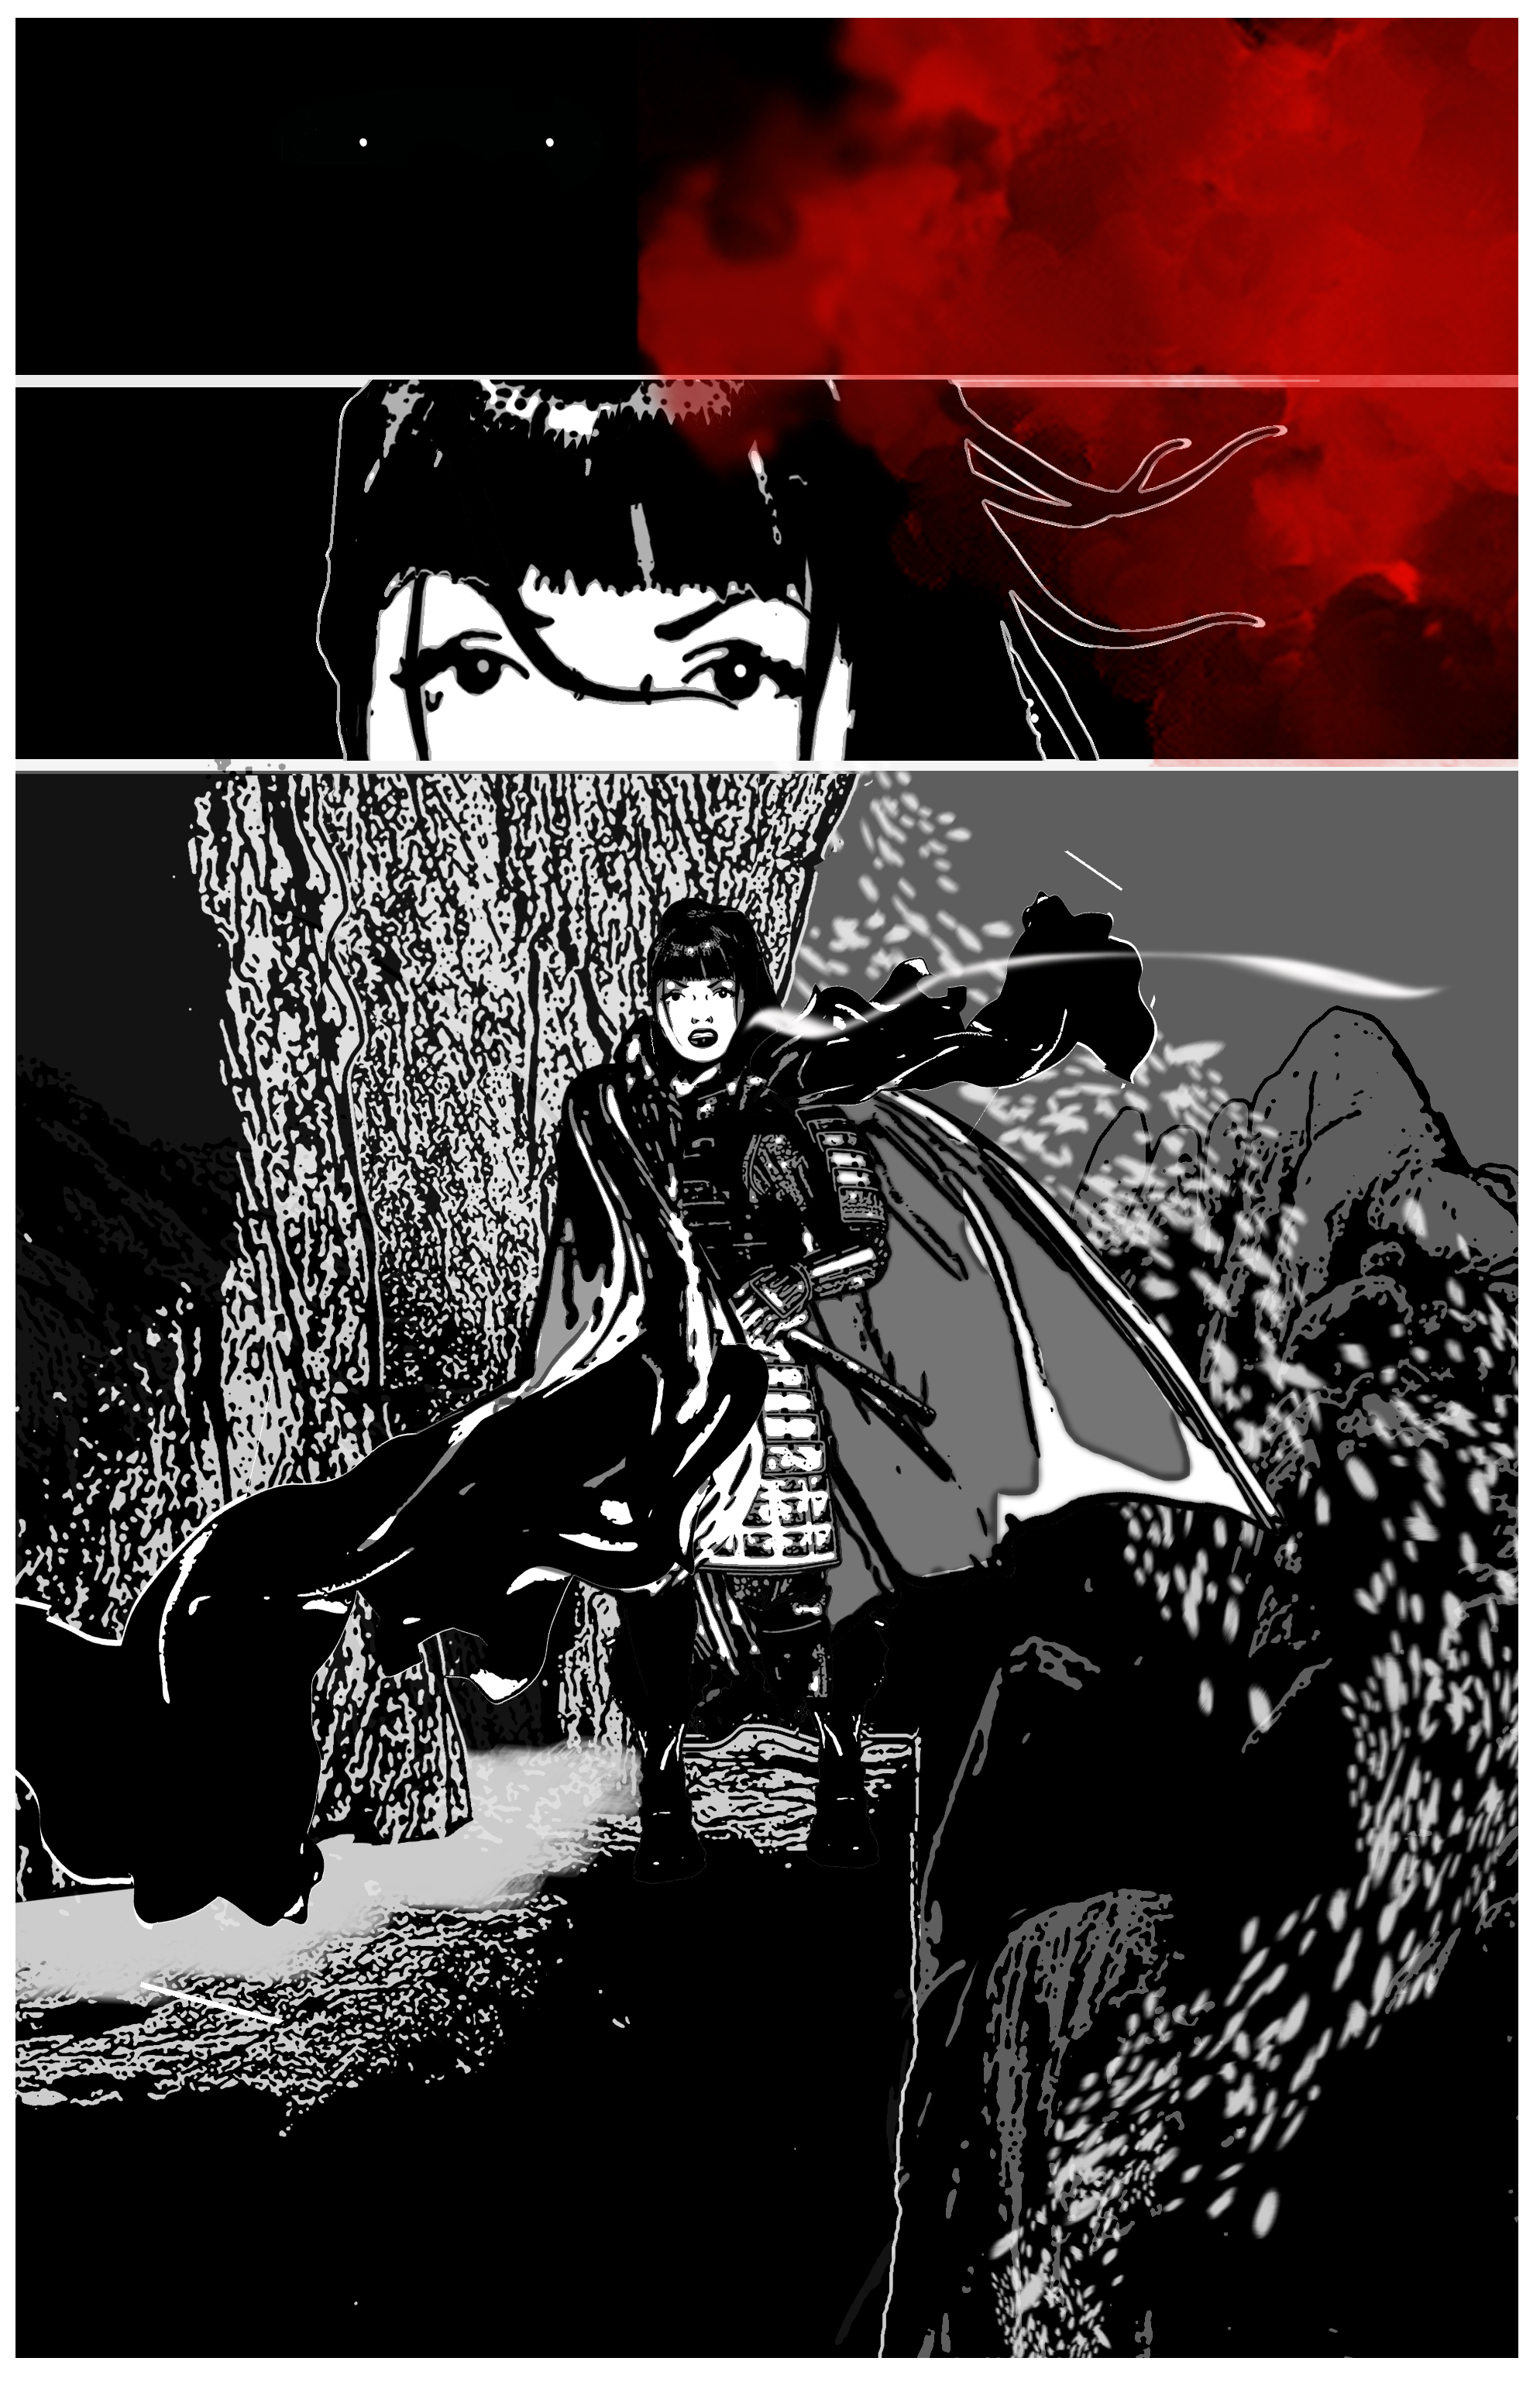 makingbm5 Inside the Art of Apocrypha: The Legend of Babymetal Graphic Novel (Exclusive)